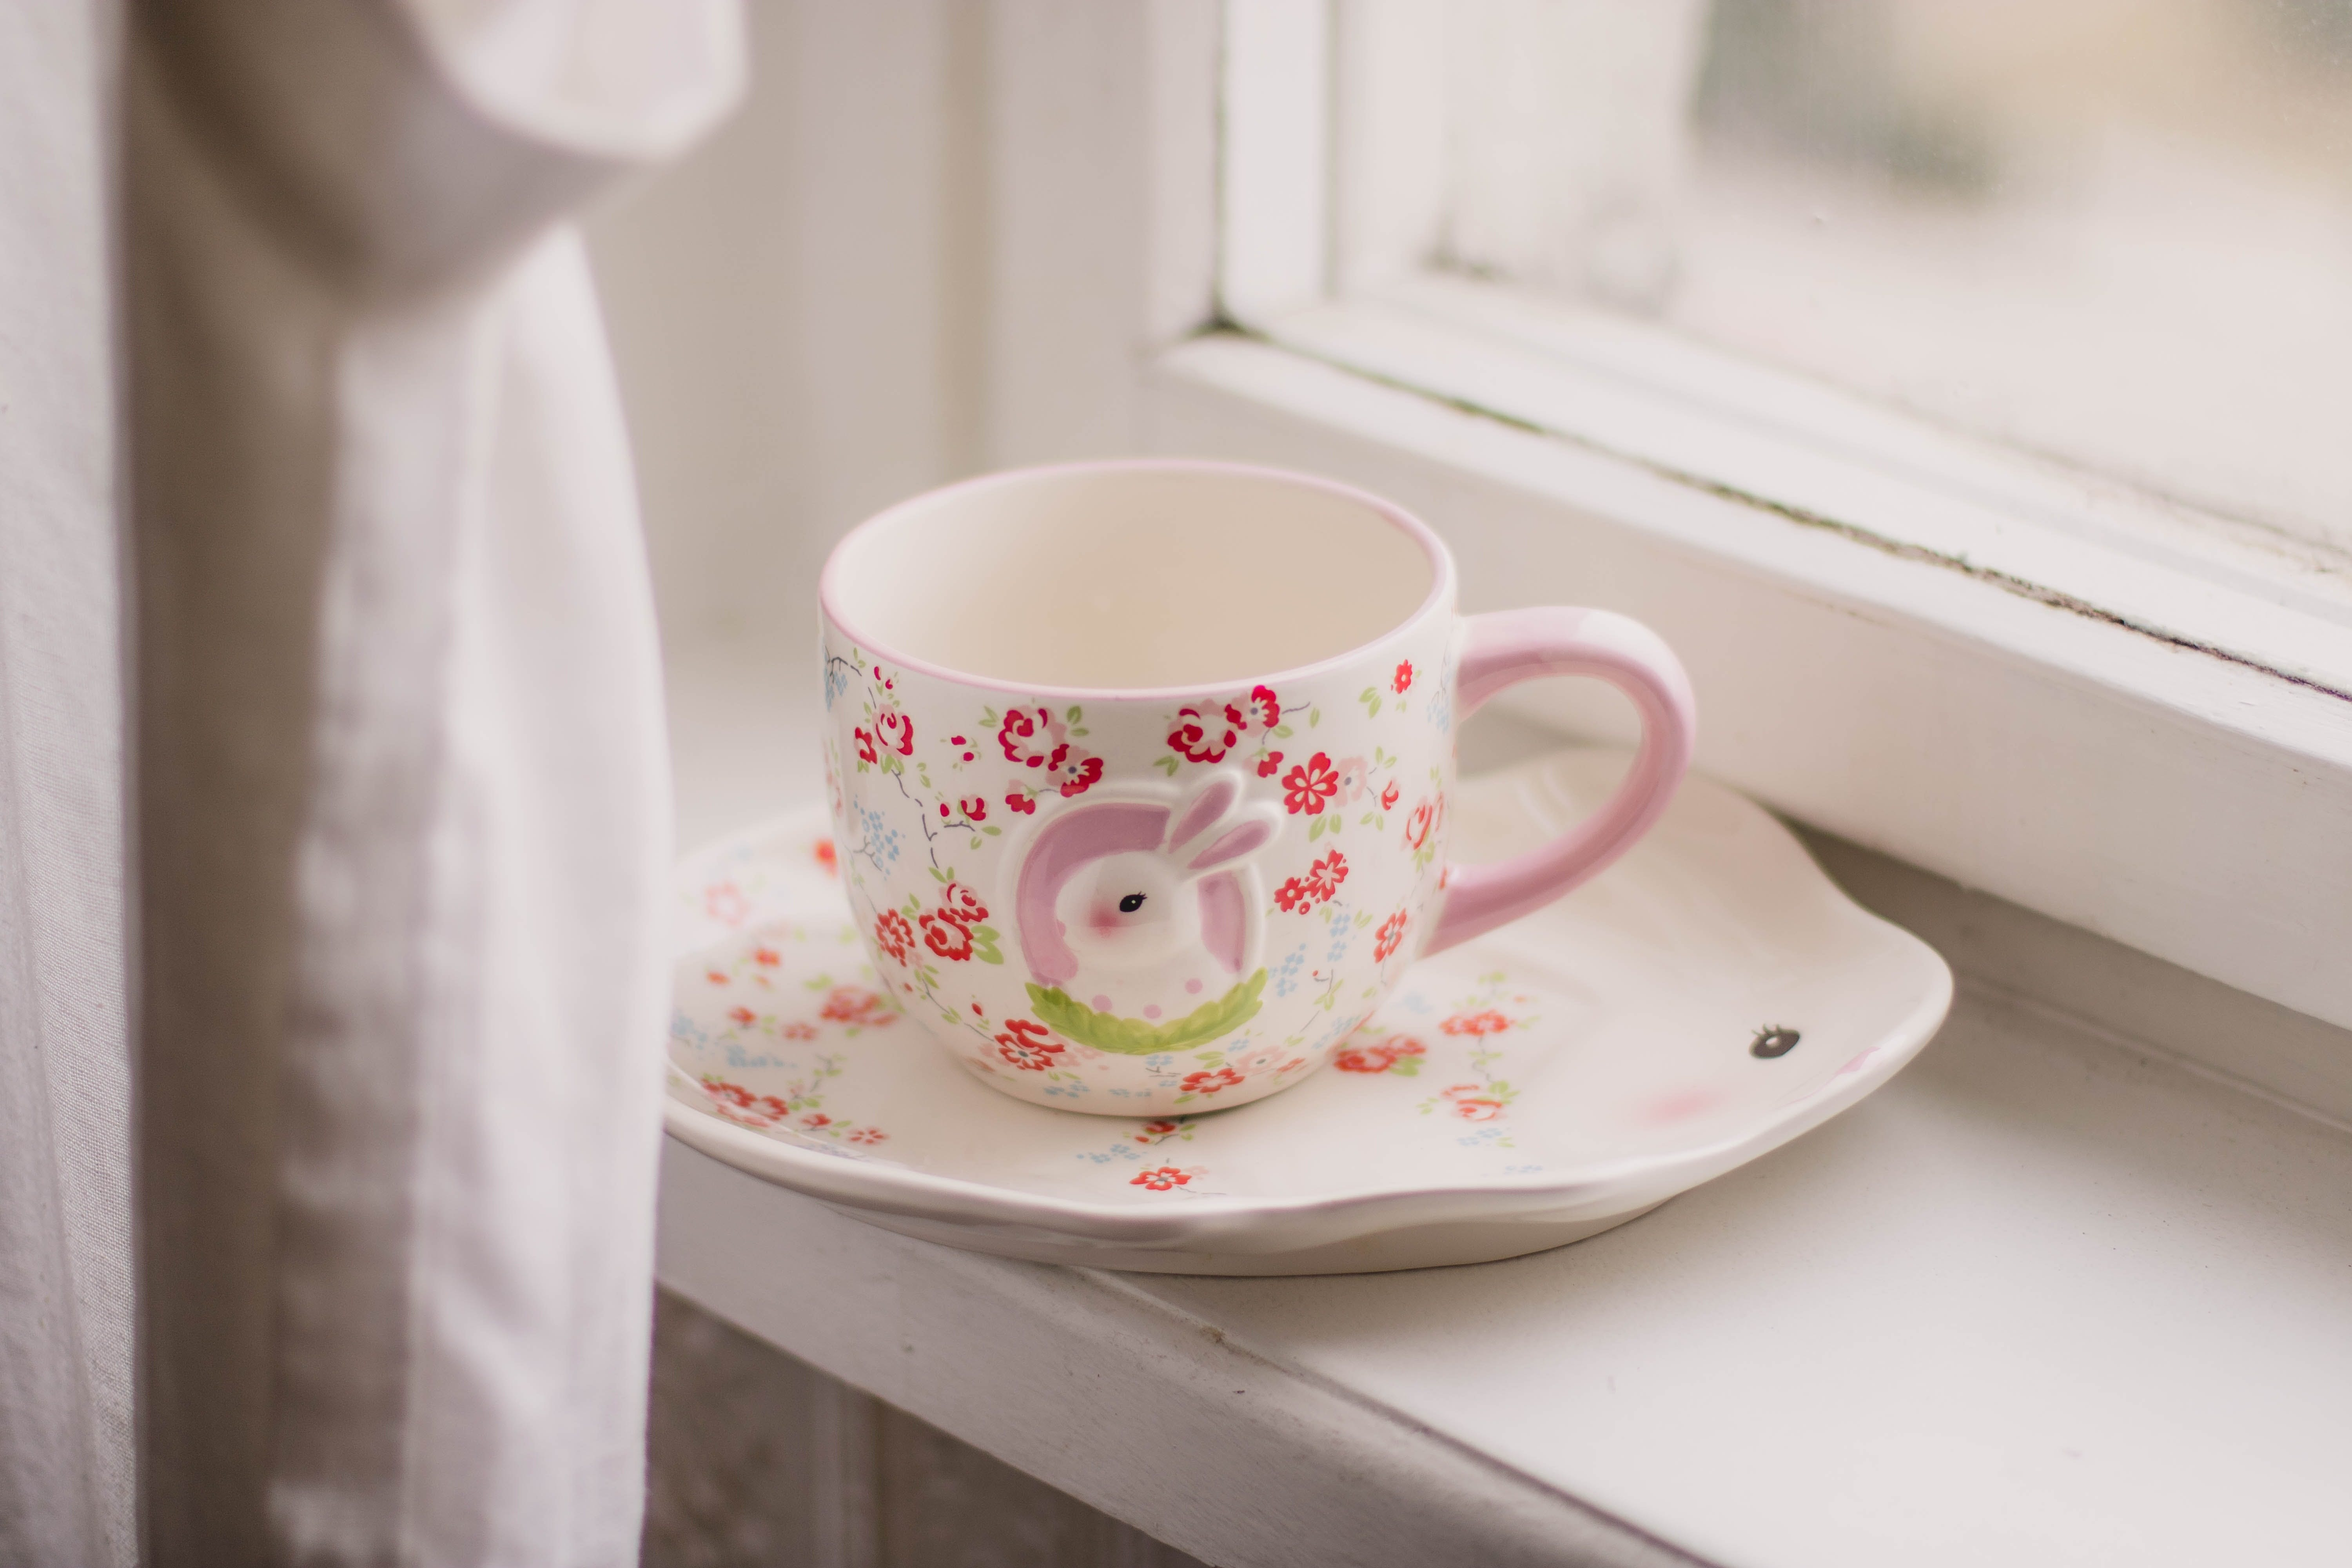 White and Pink Rabbit Themed Ceramic Cup and Saucer